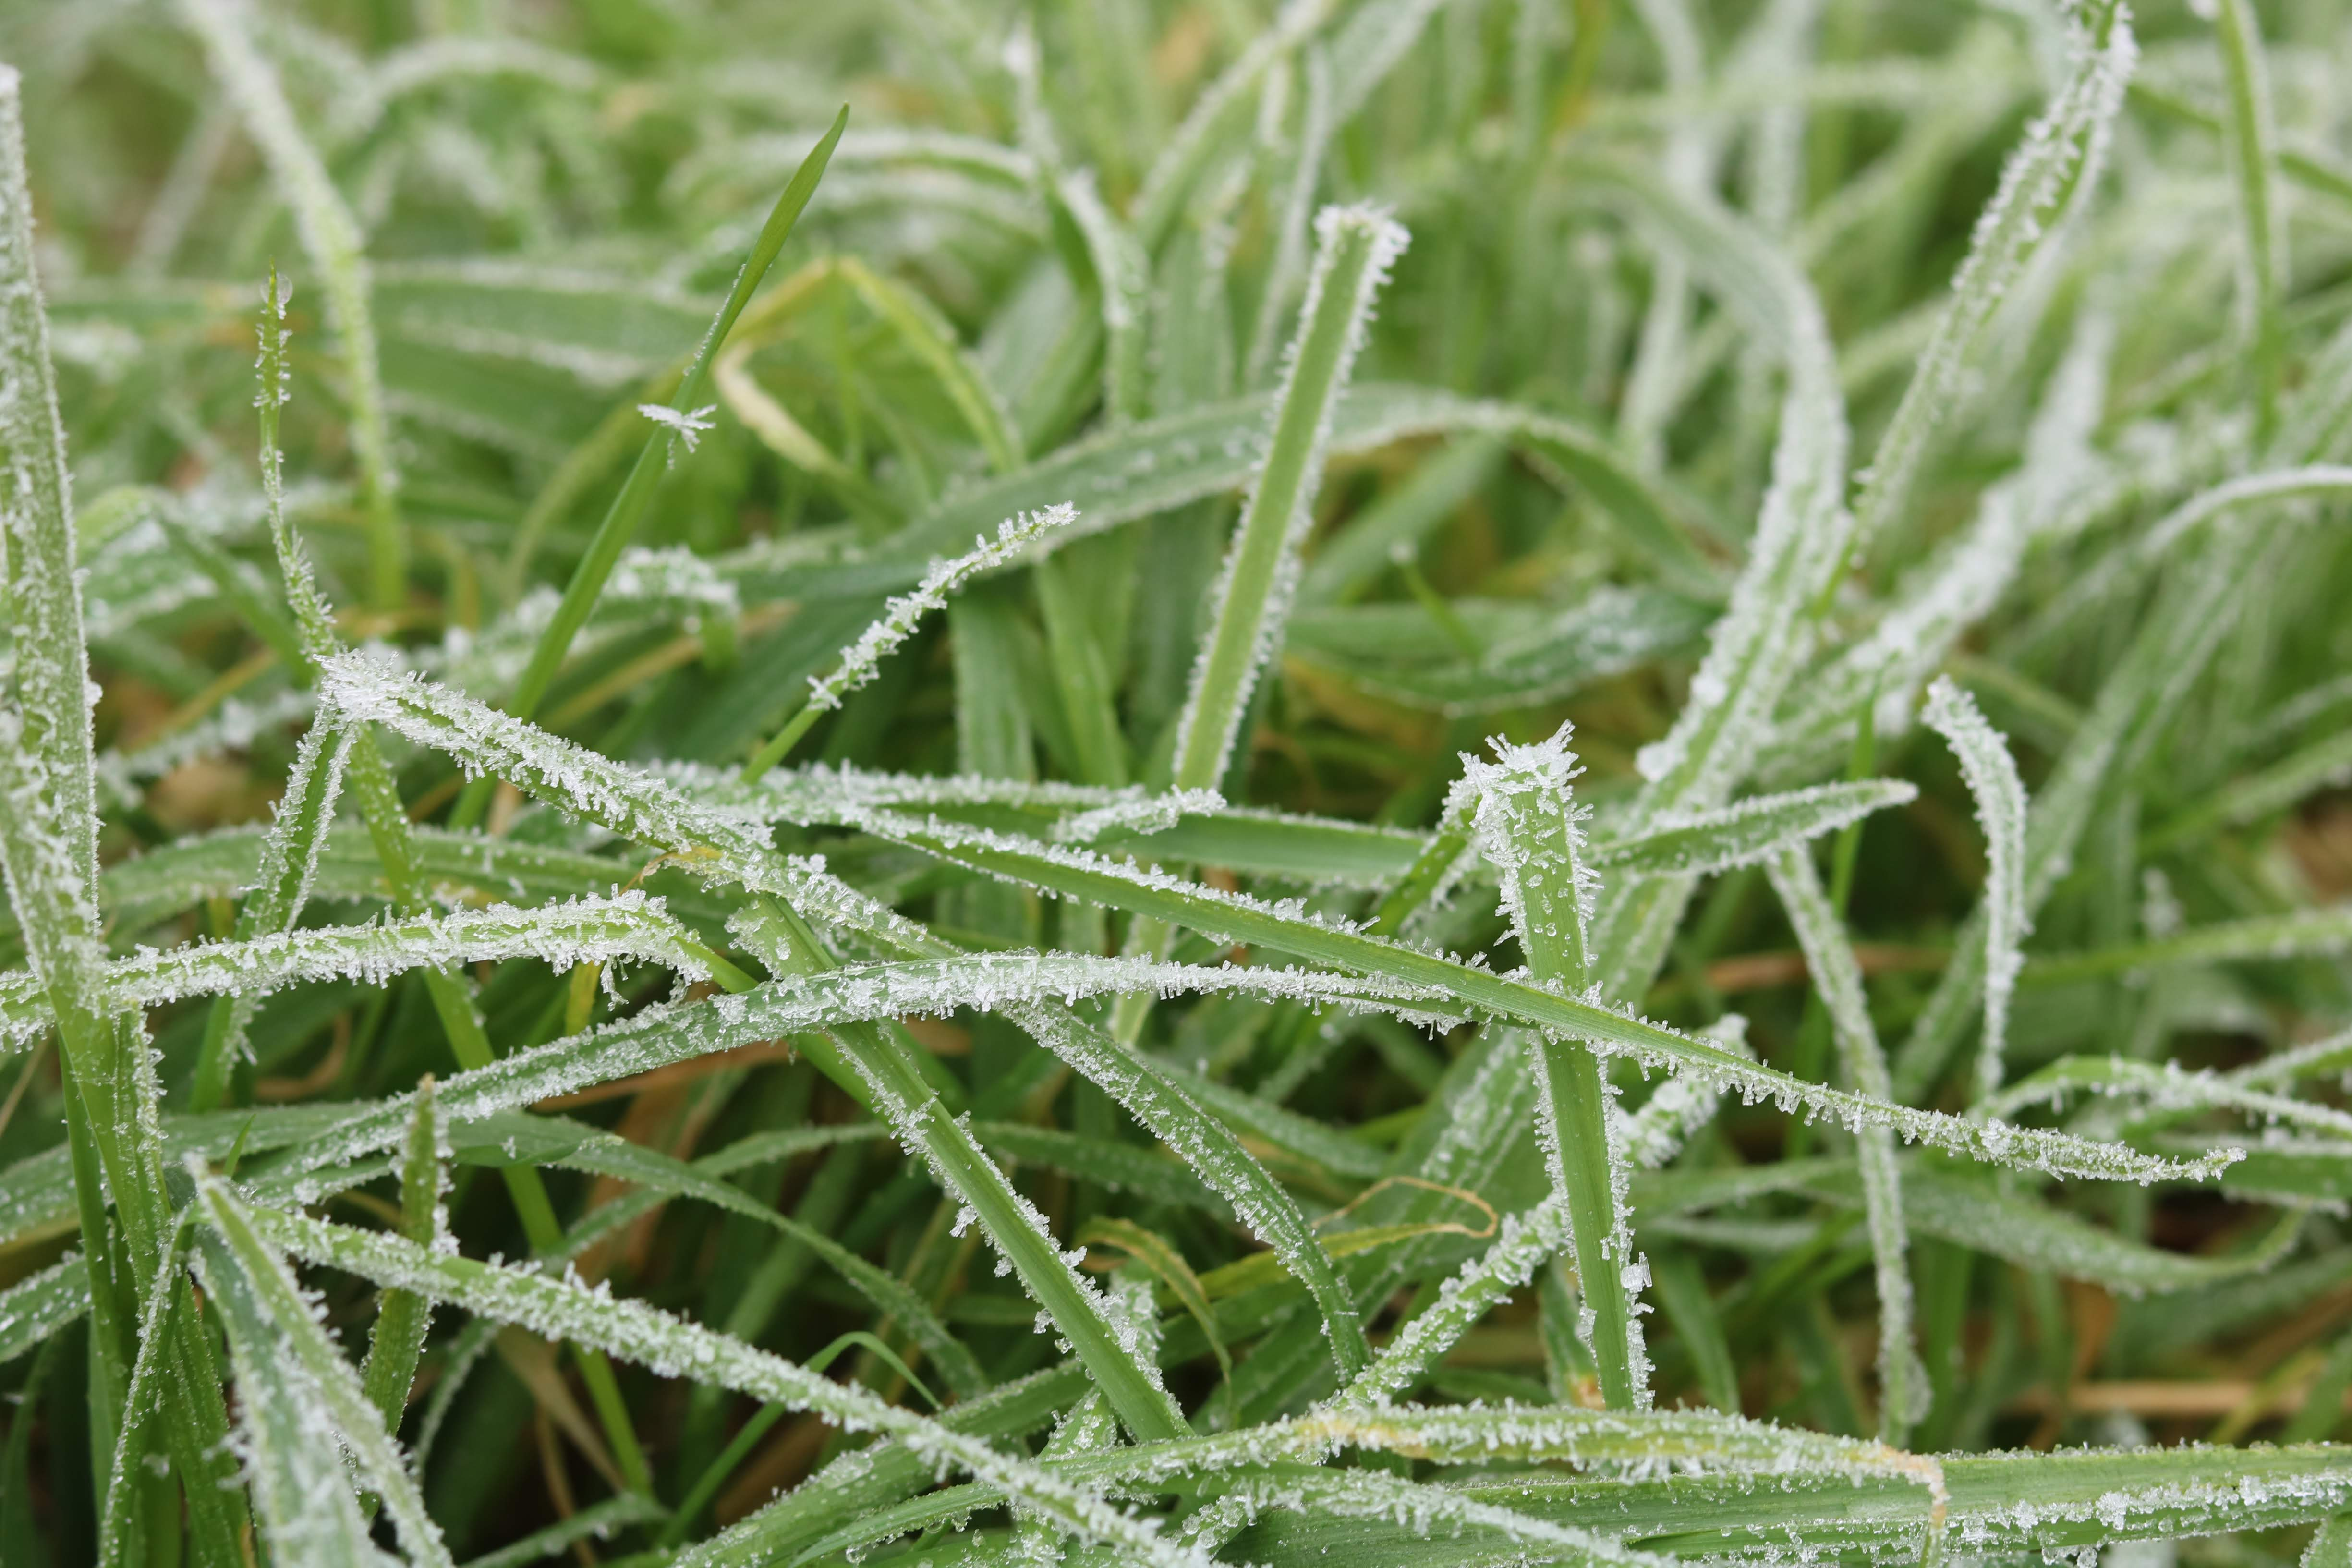 Frost crystals on grass leaf blades